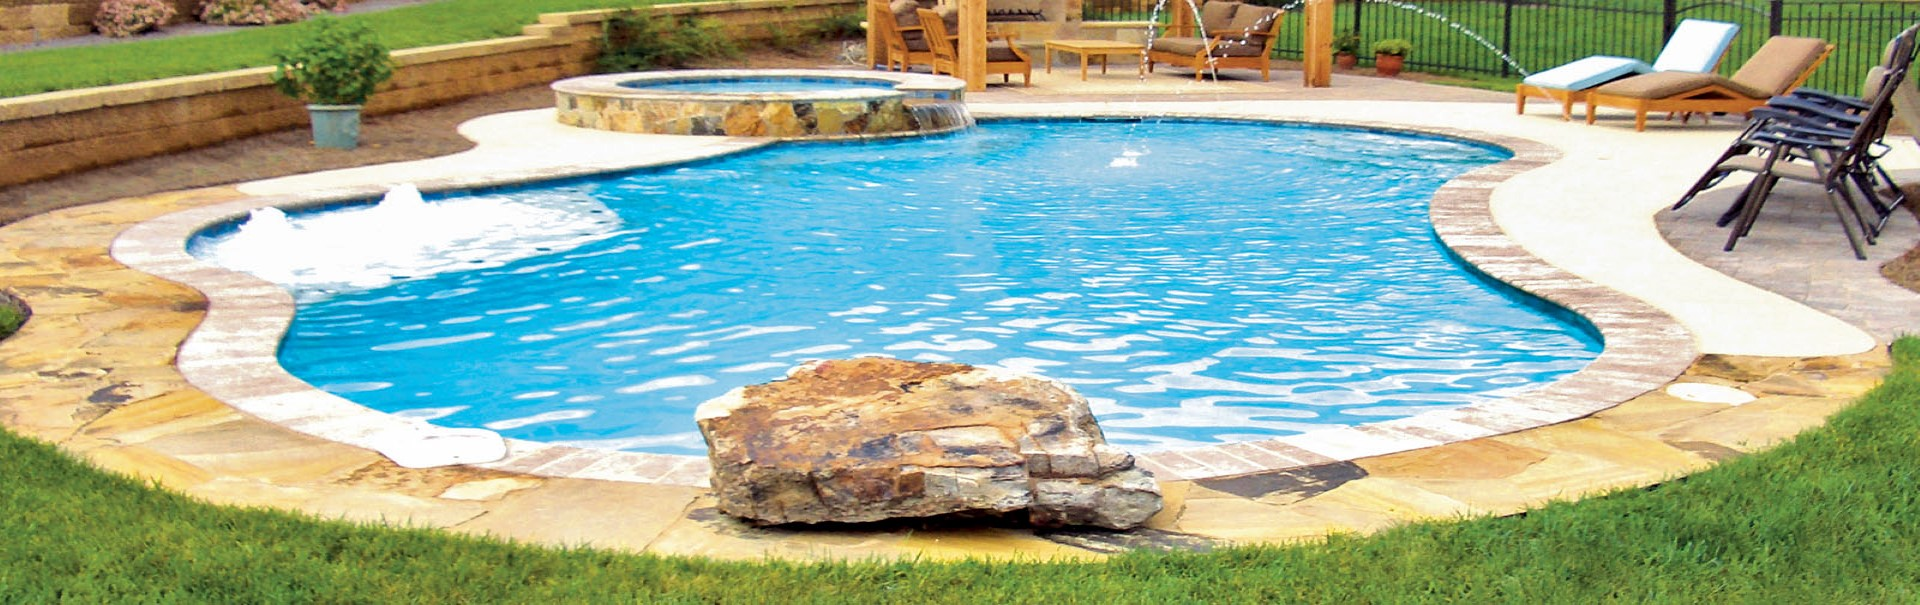 Raleigh swimming pool builder for Pool design raleigh nc